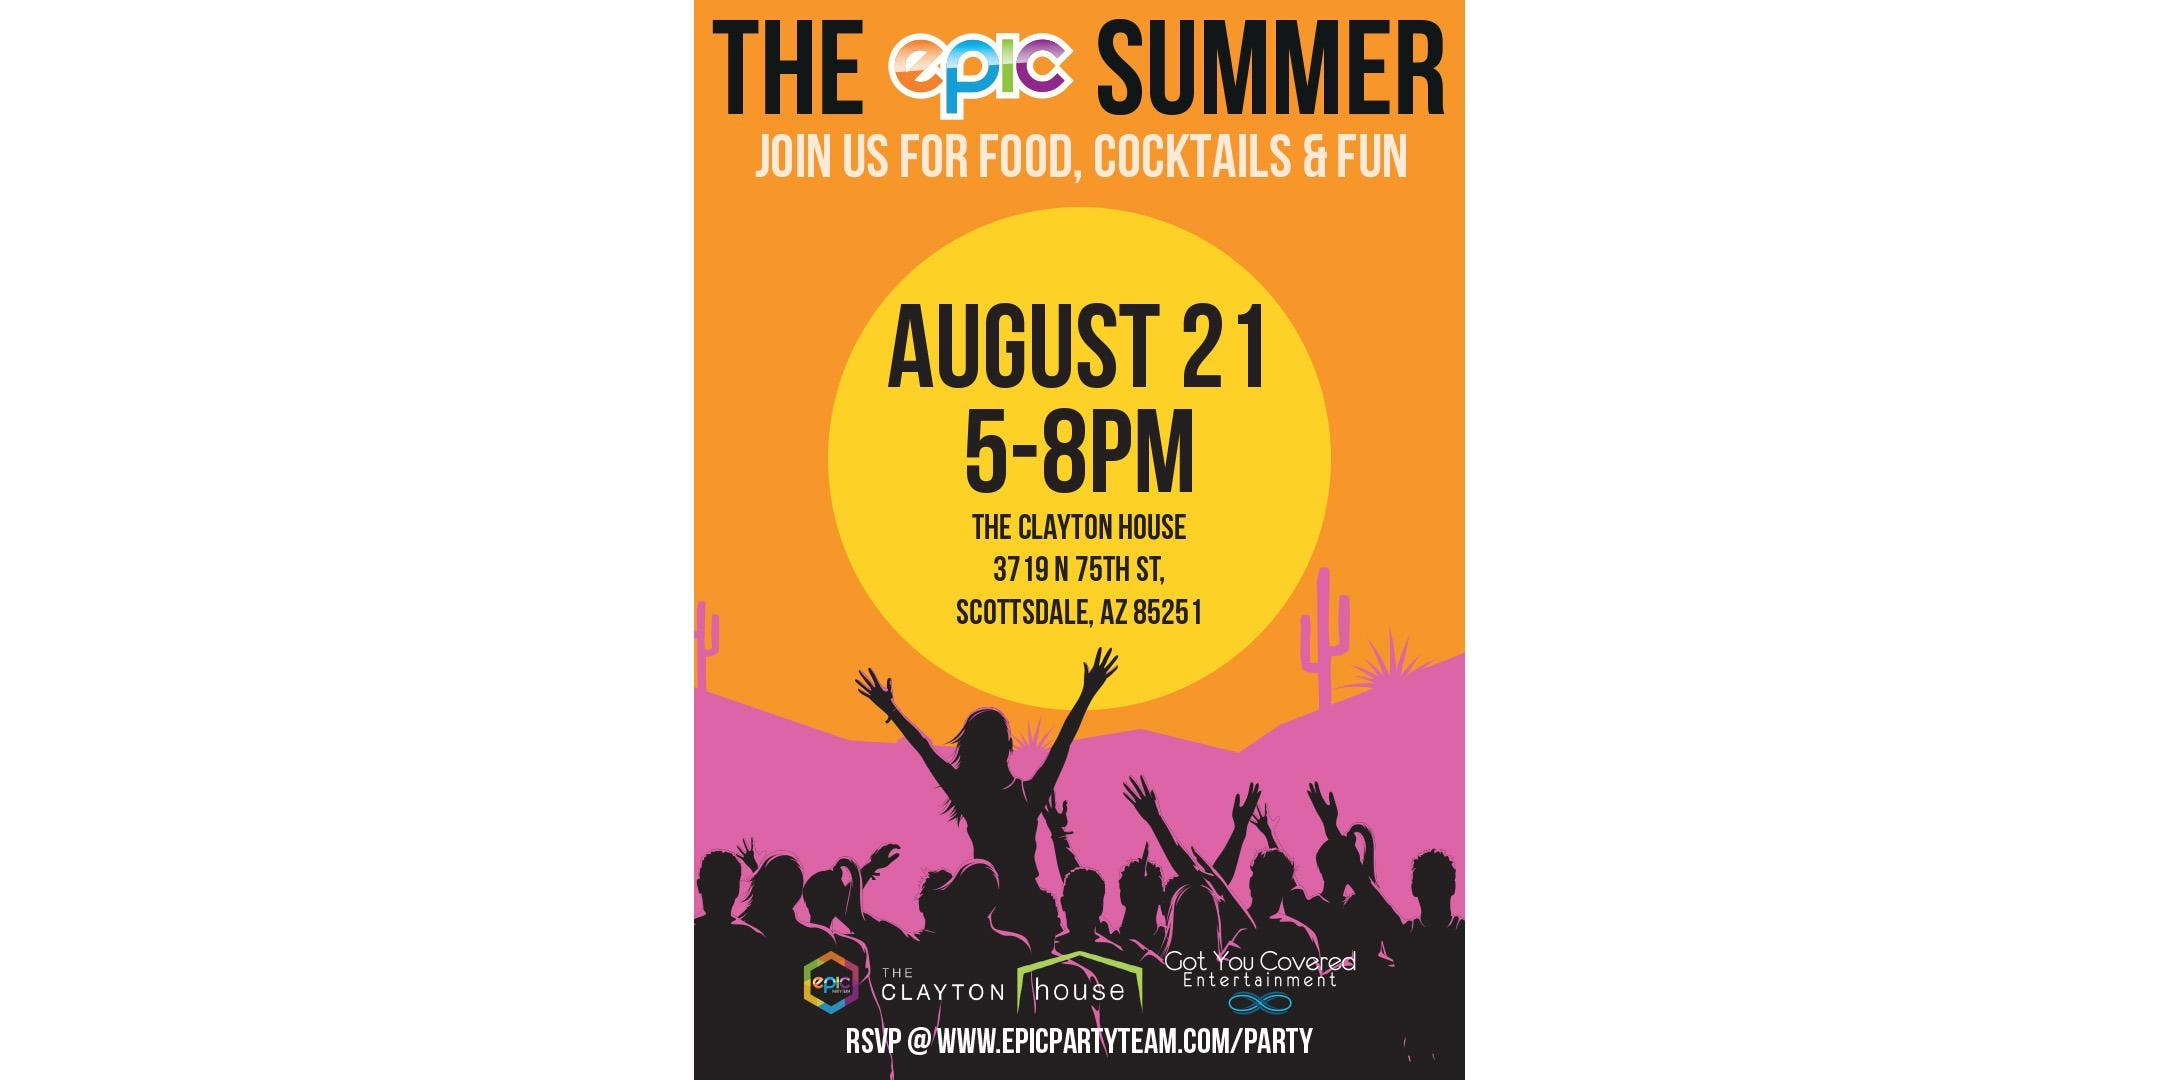 The Epic Summer